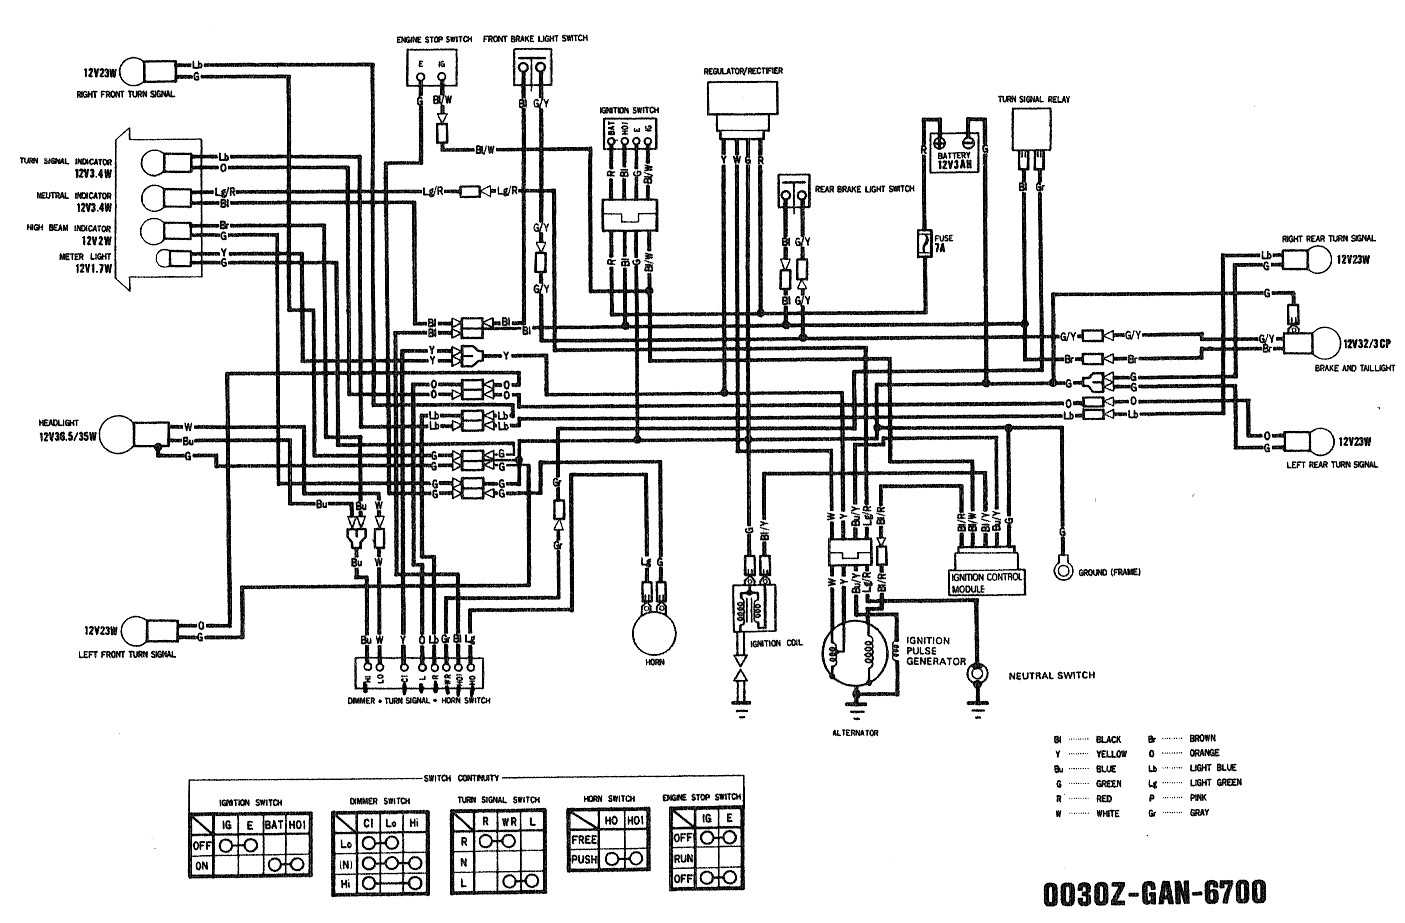 1976 Honda Cb360 Wiring Diagram on Honda Cb360 Wiring Diagram